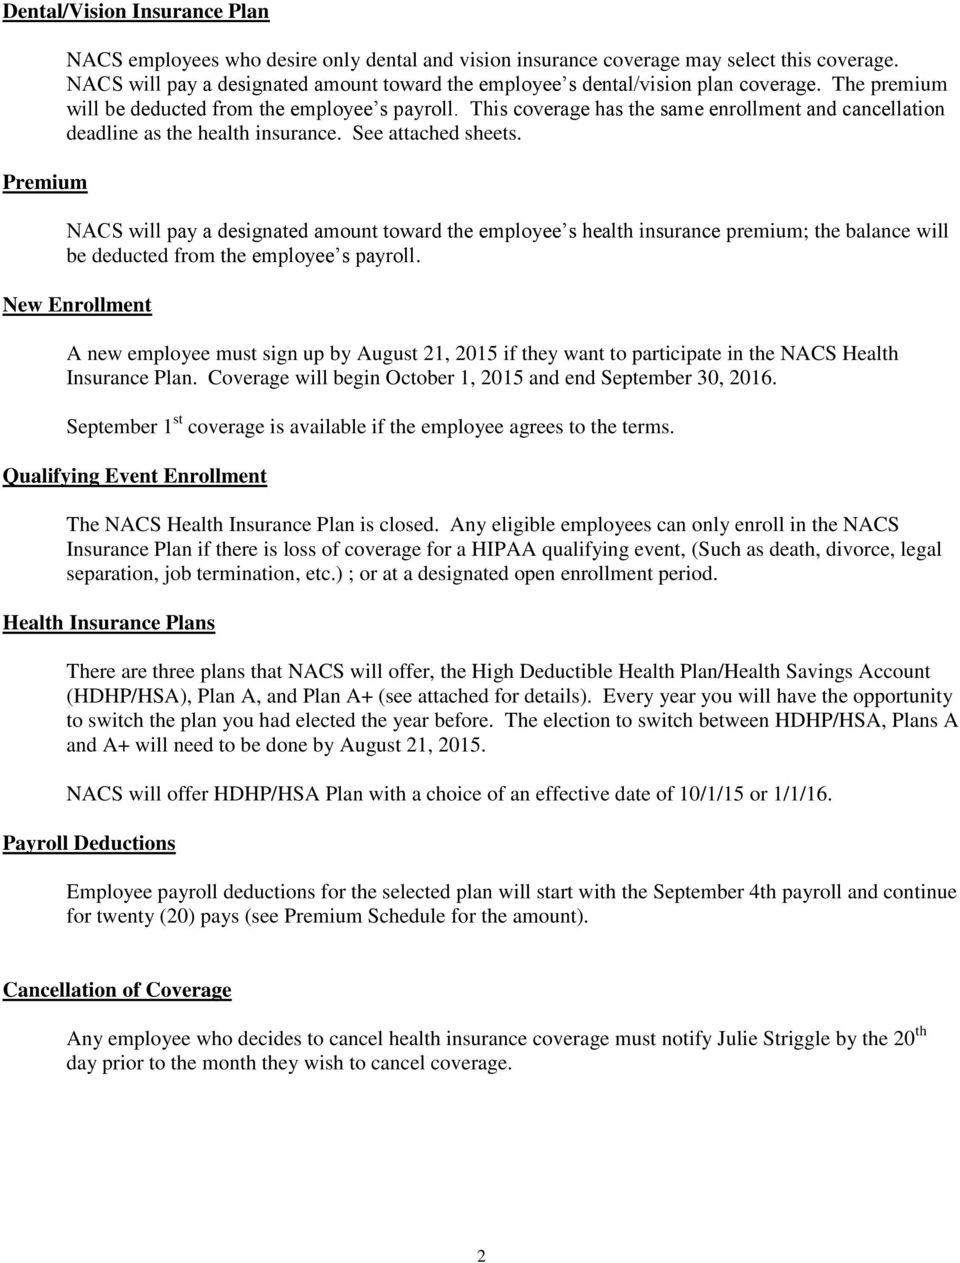 This coverage has the same enrollment and cancellation deadline as the health insurance. See attached sheets.